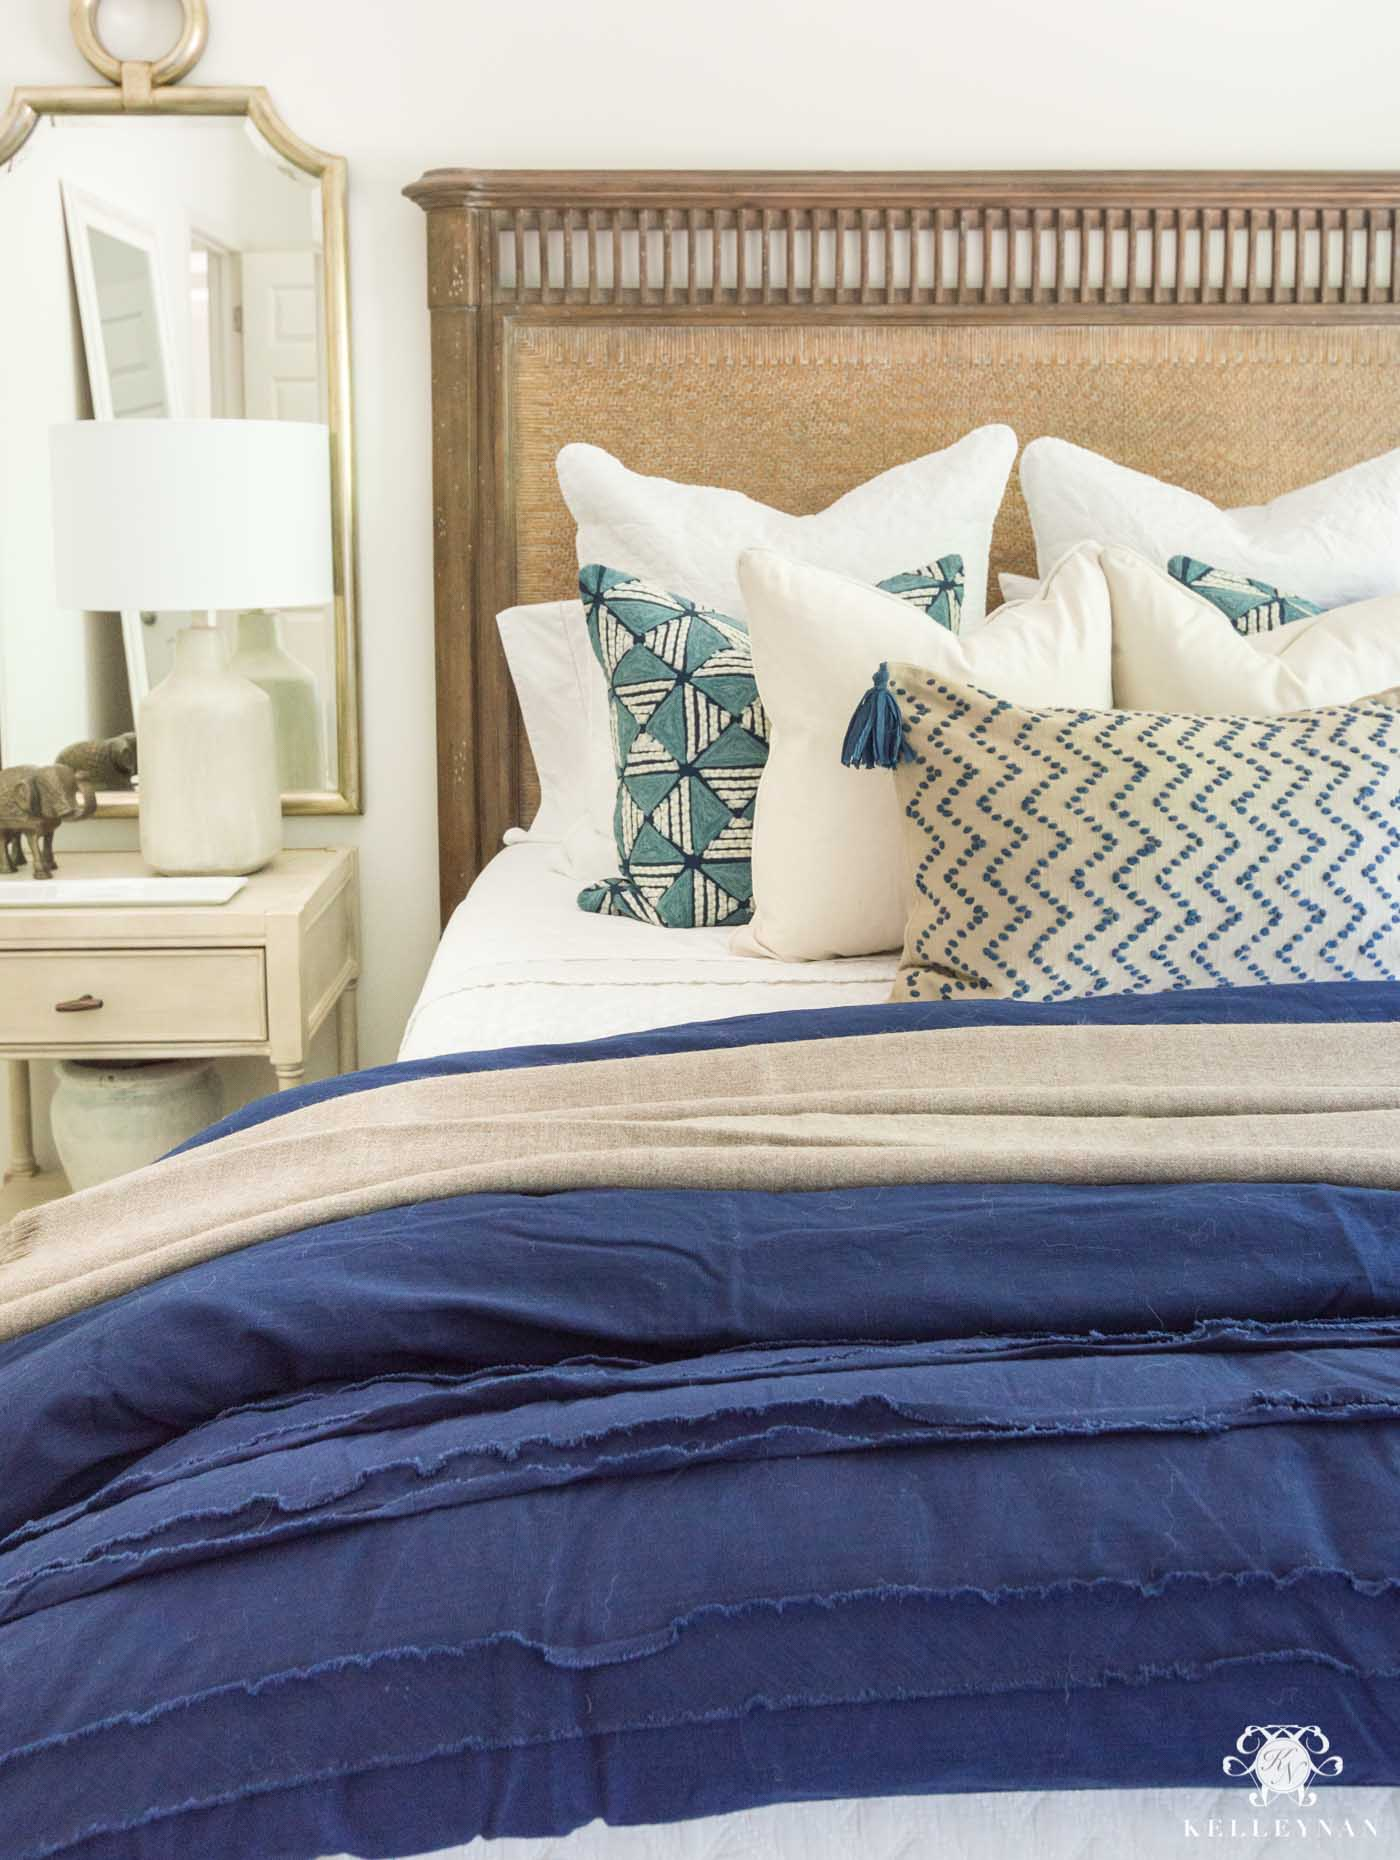 How to Make a Queen Bed